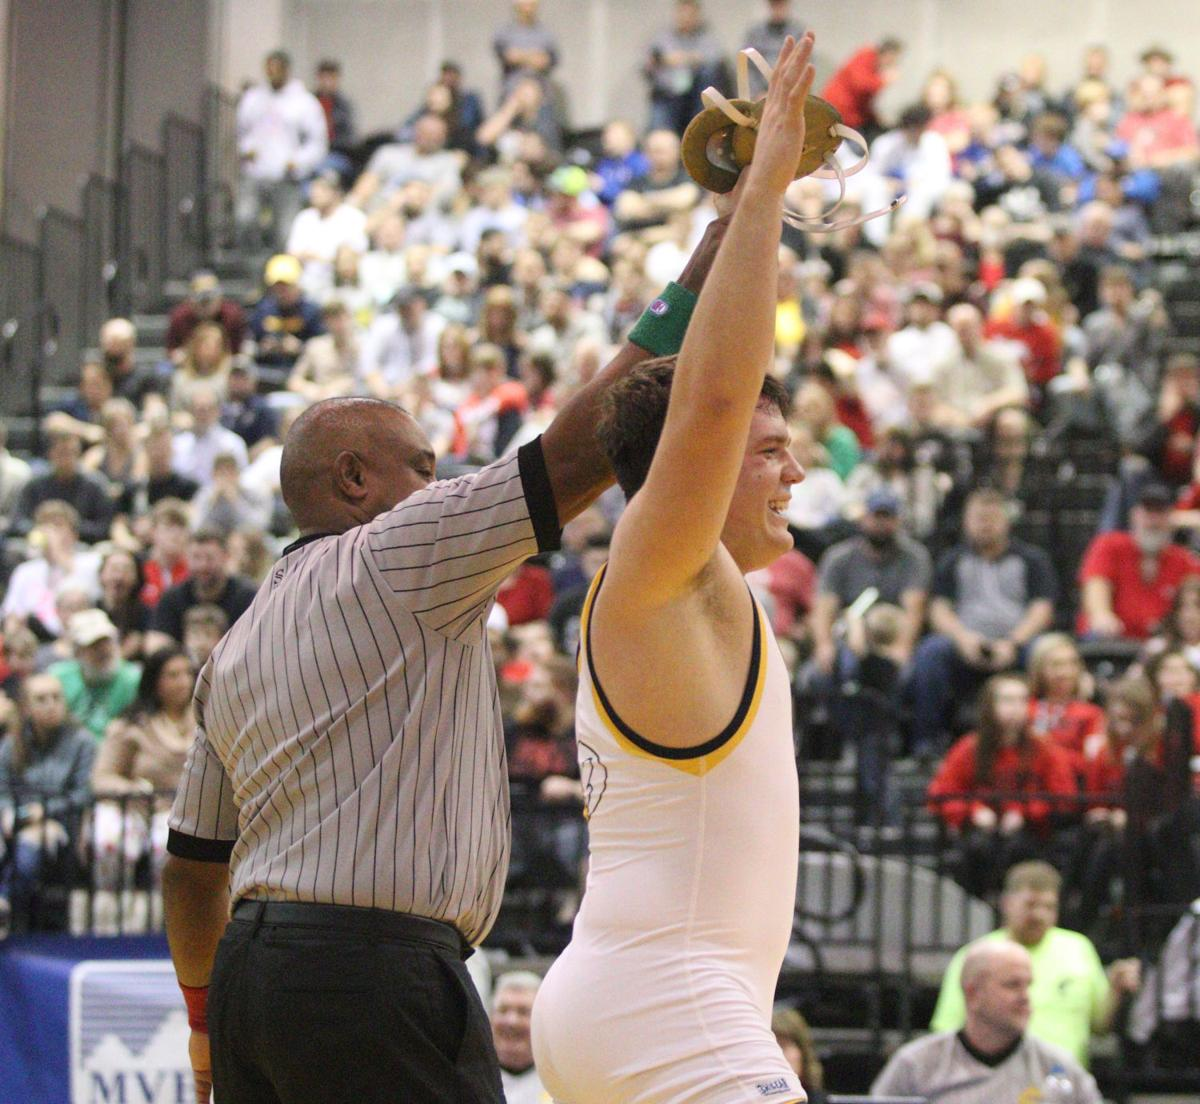 Nate Kotsko ended his senior year as a state champion